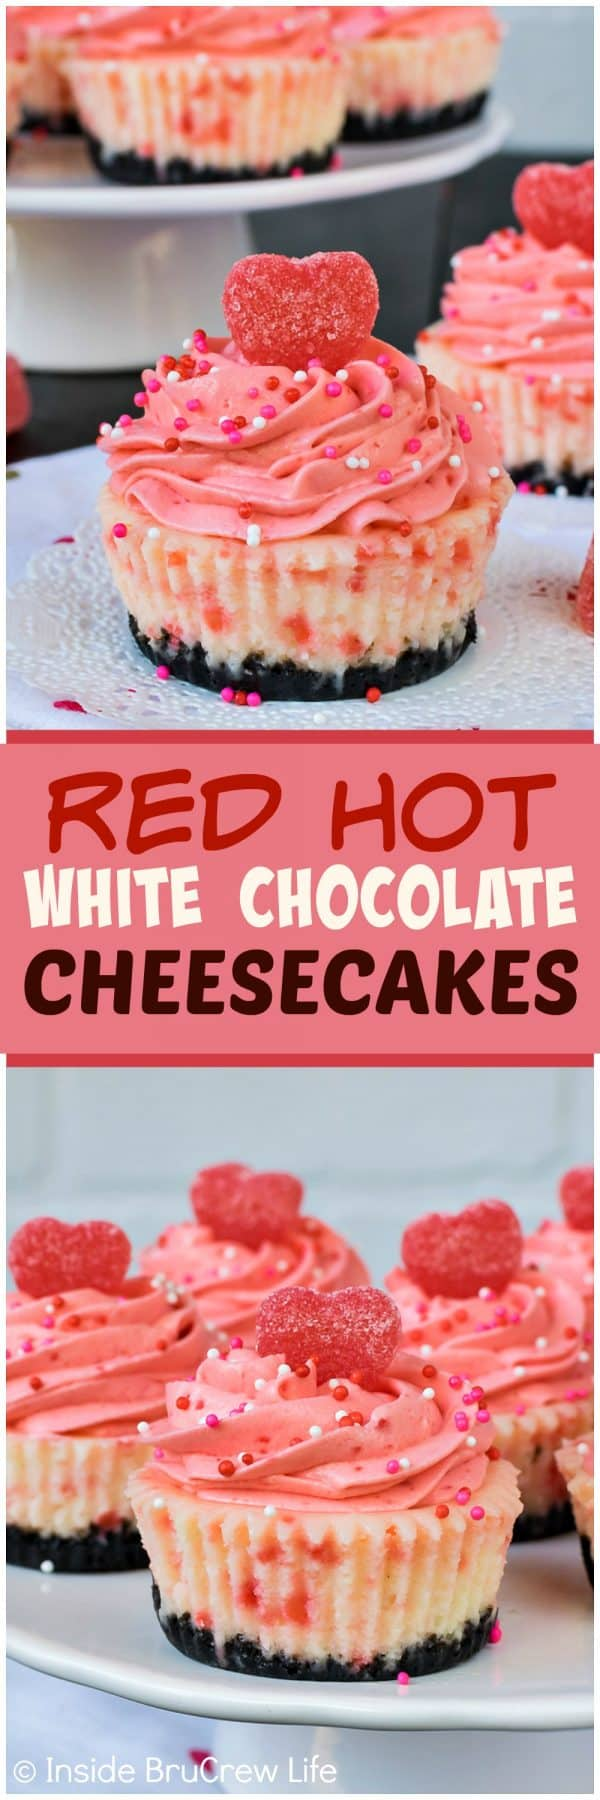 Two pictures of red hot white chocolate cheesecake collaged together with a pink text box